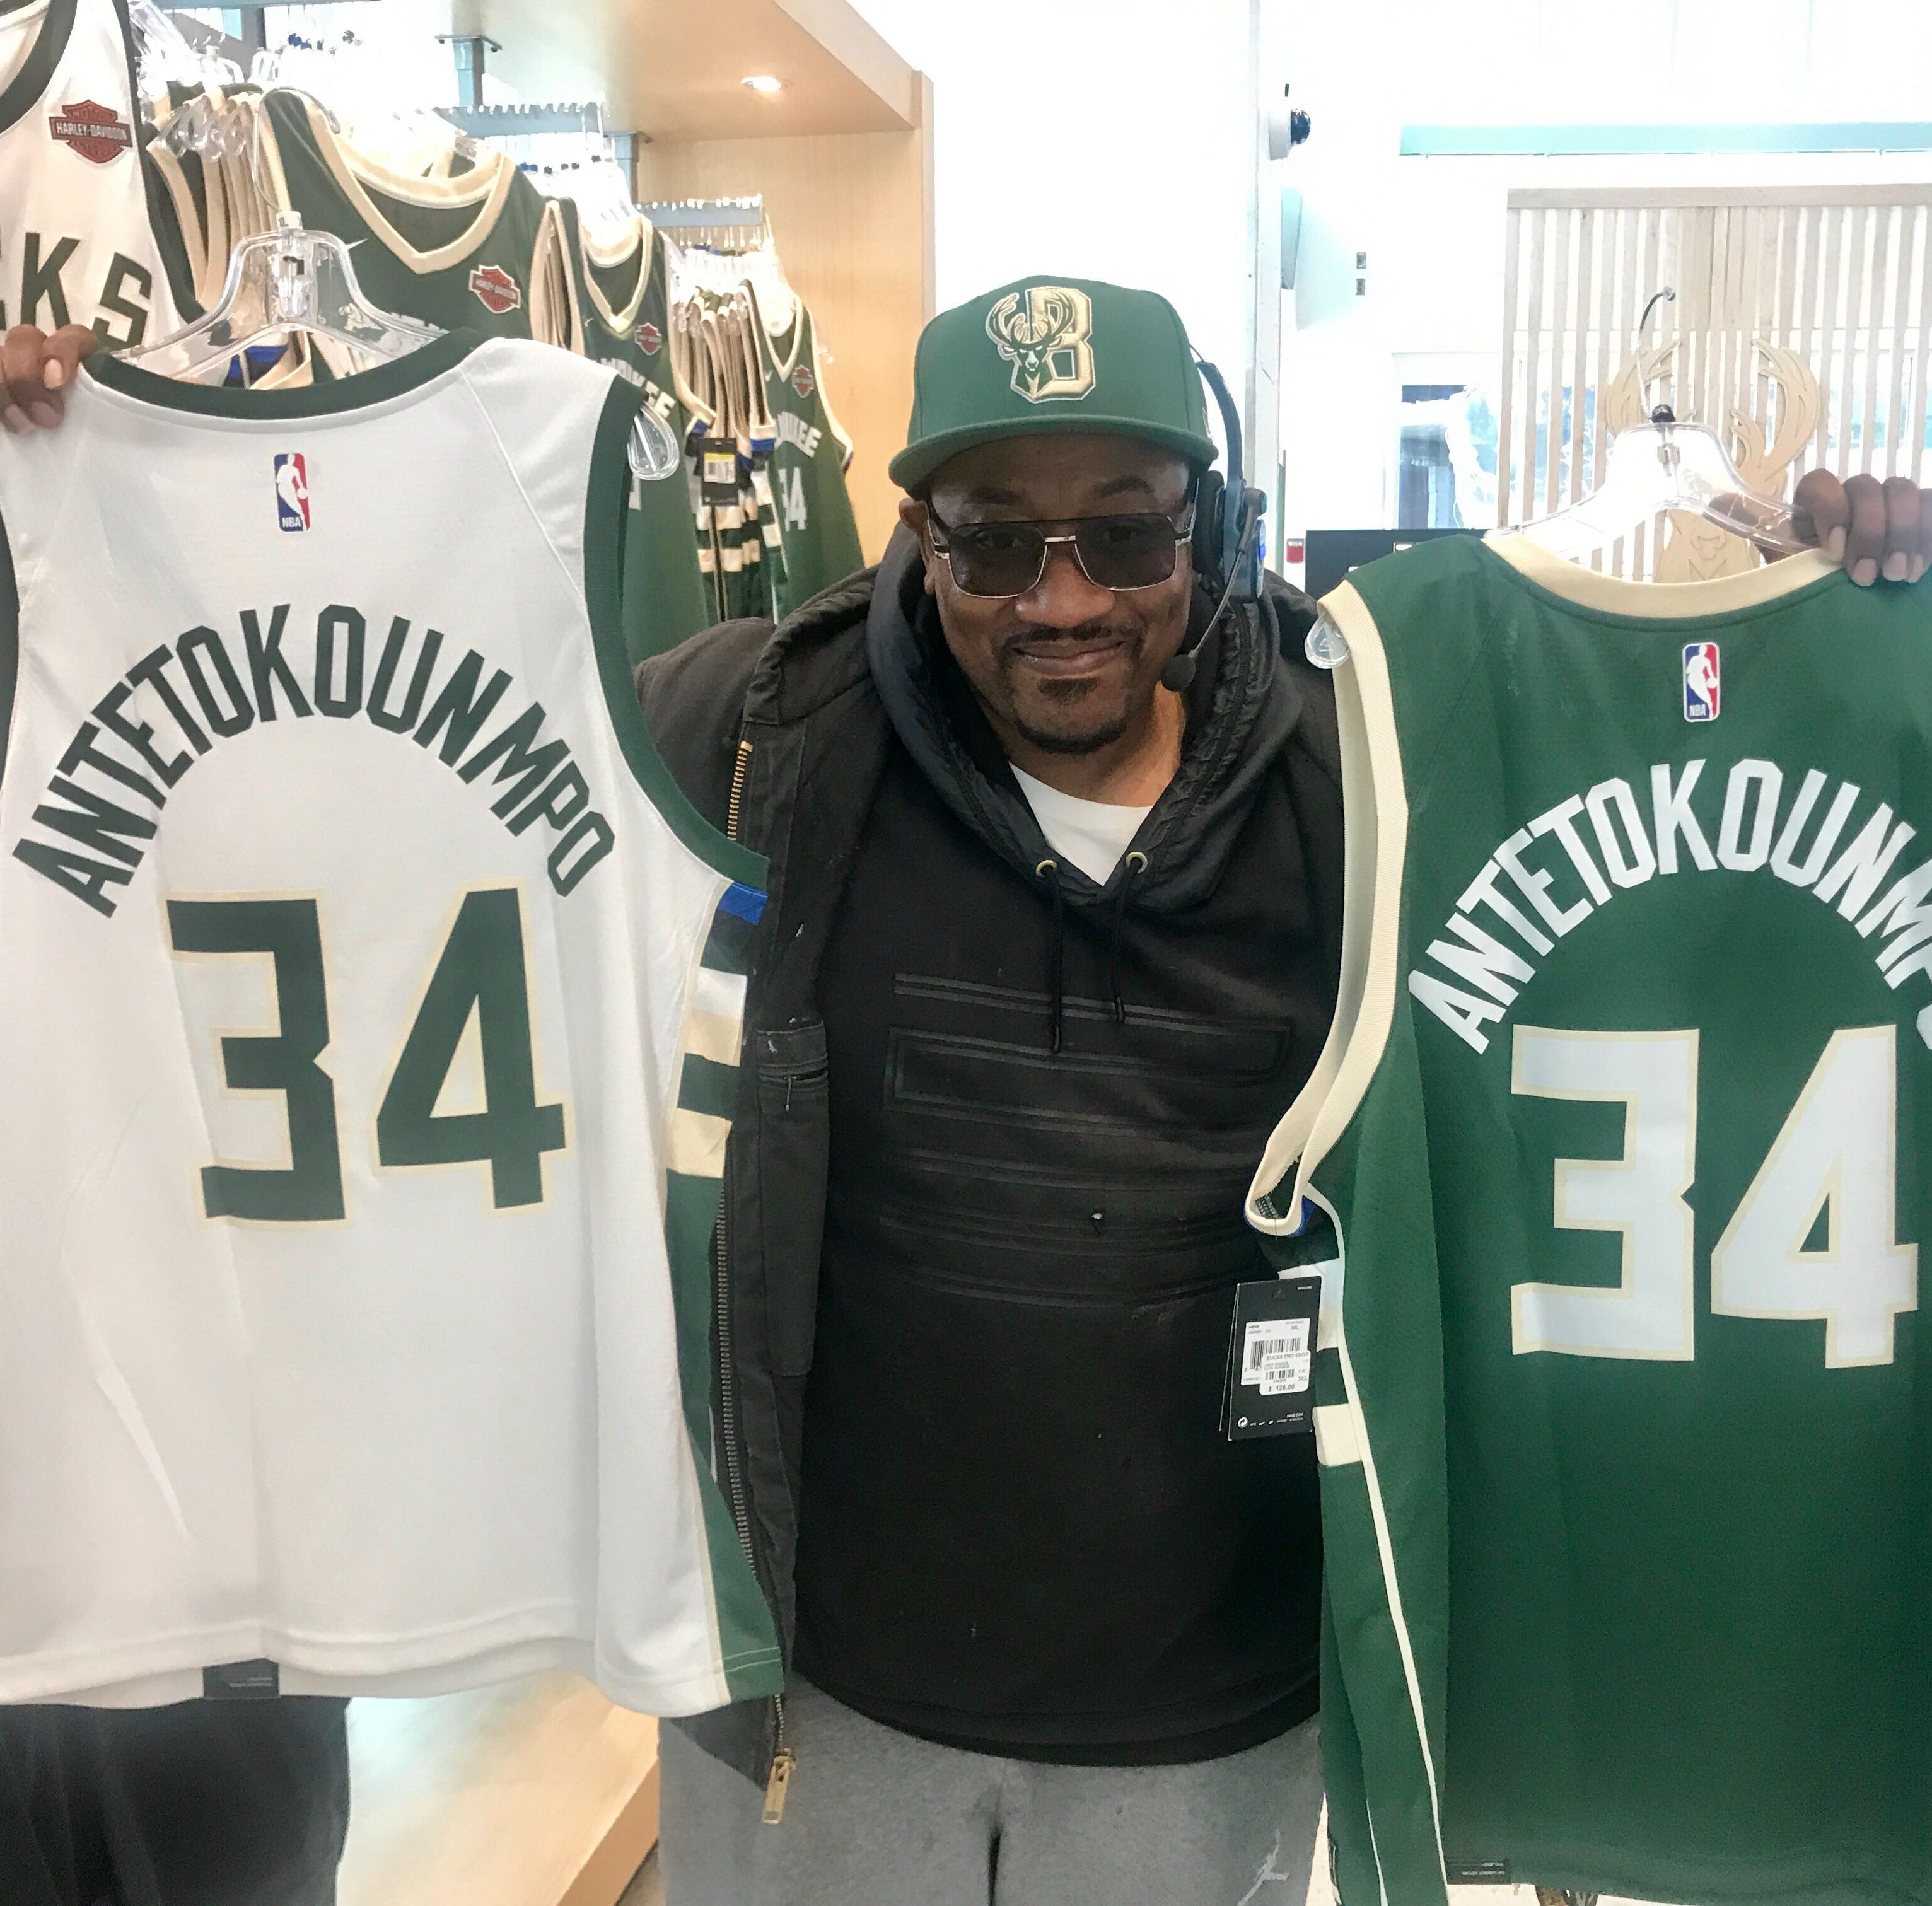 Having the No. 1 team makes it easier to sell Bucks playoff gear to longtime -- and bandwagon -- fans